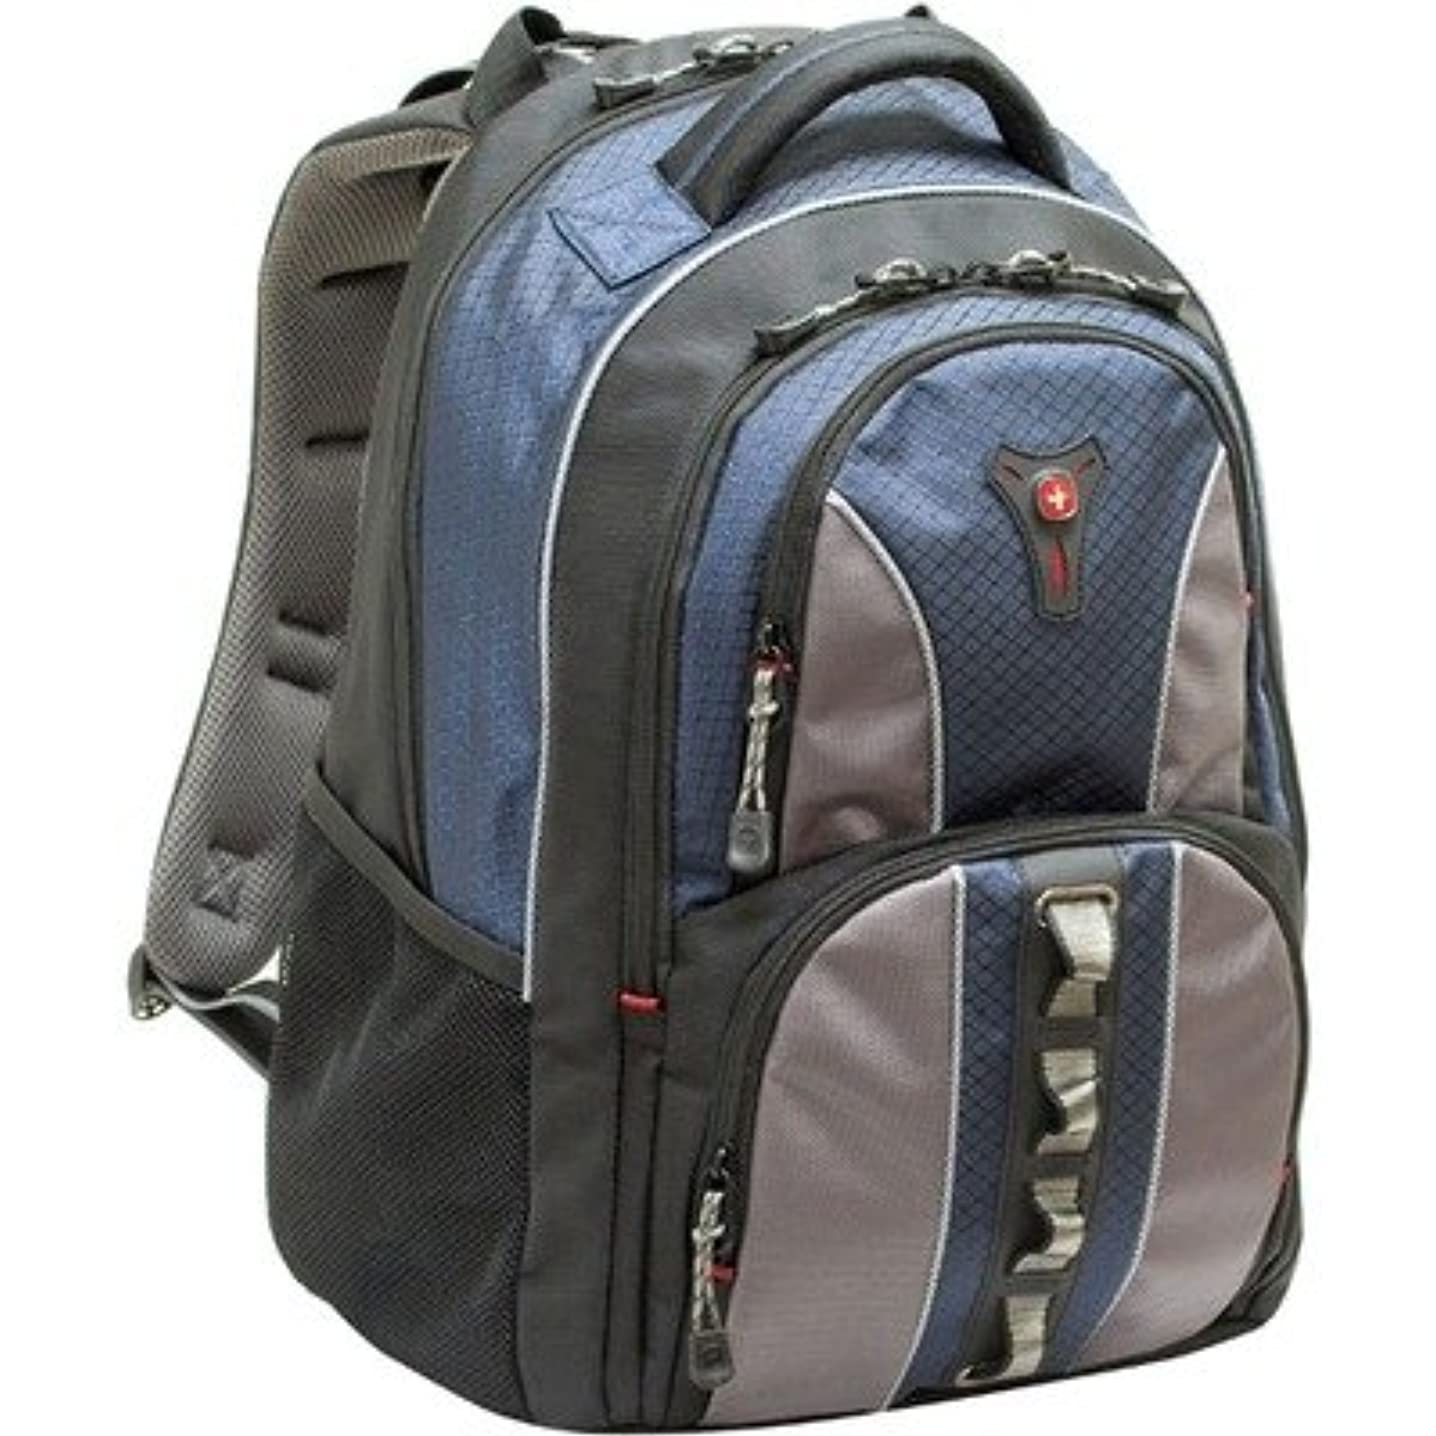 2Y67926 - SwissGear COBALT GA-7343-06F00 Carrying Case (Backpack) for 15.6quot; Notebook - Blue